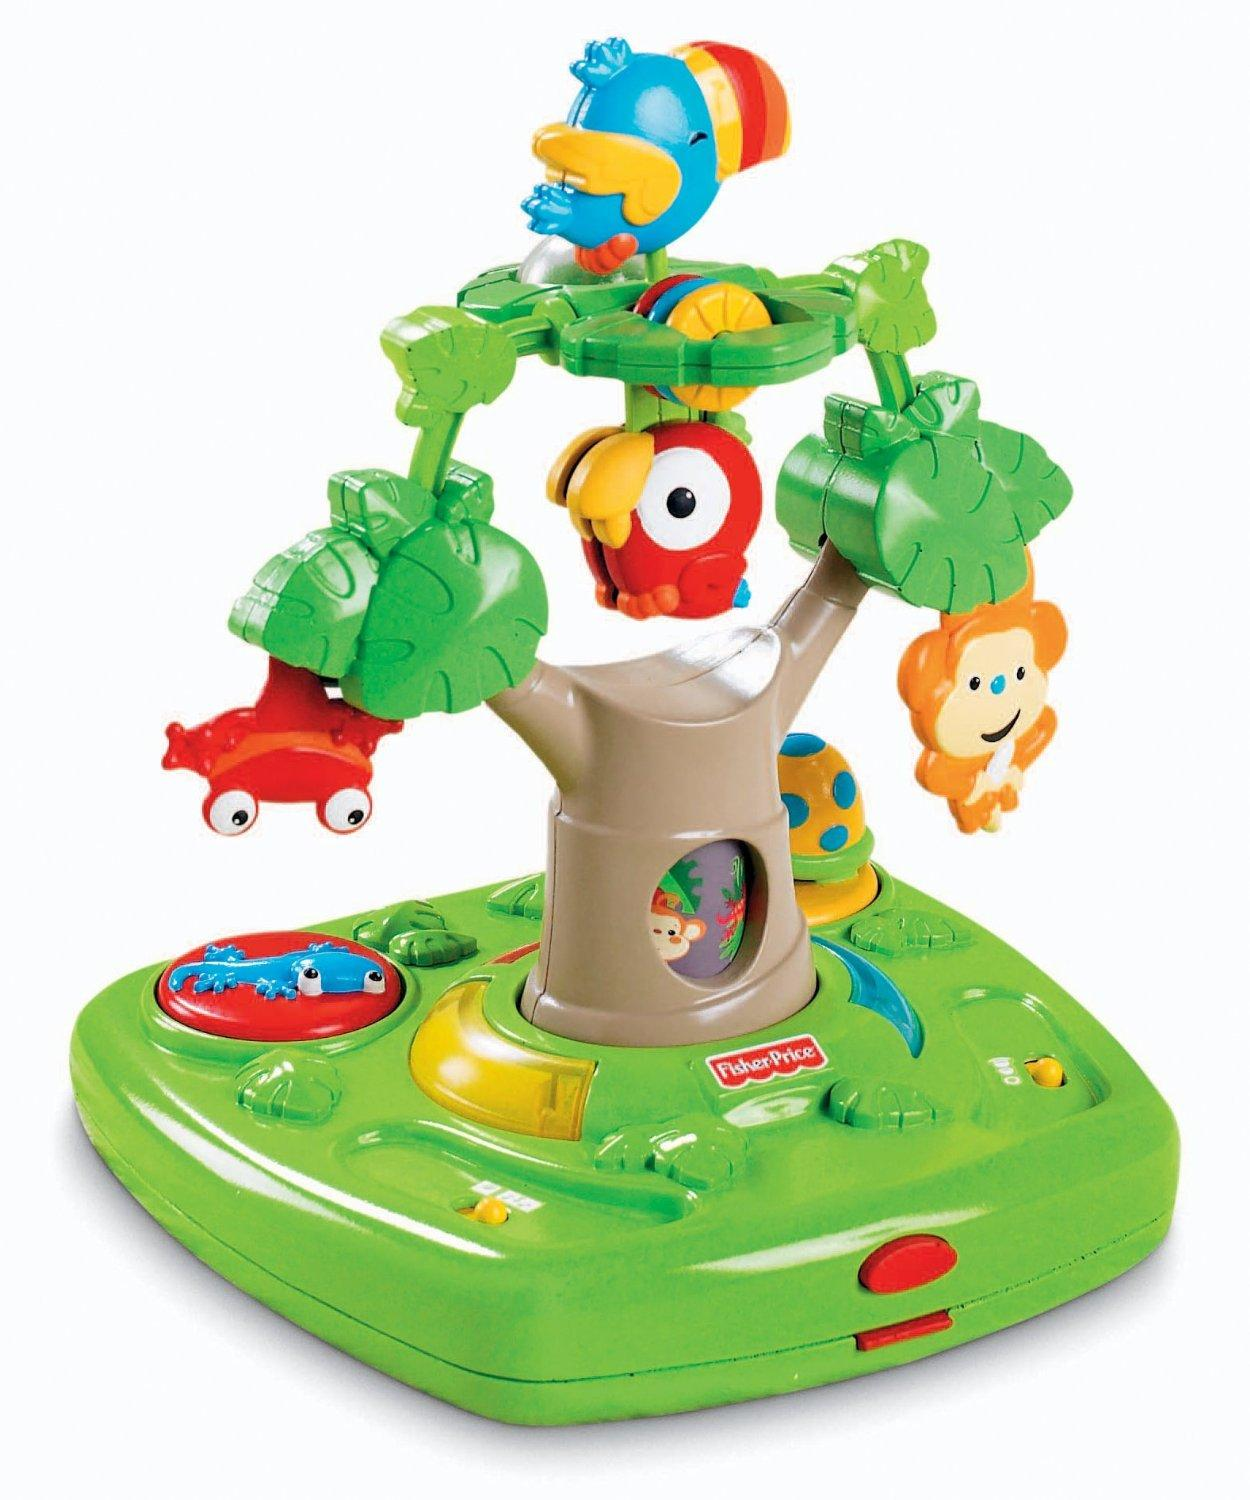 High Chair Toy Holder : Amazon fisher price rainforest healthy care high